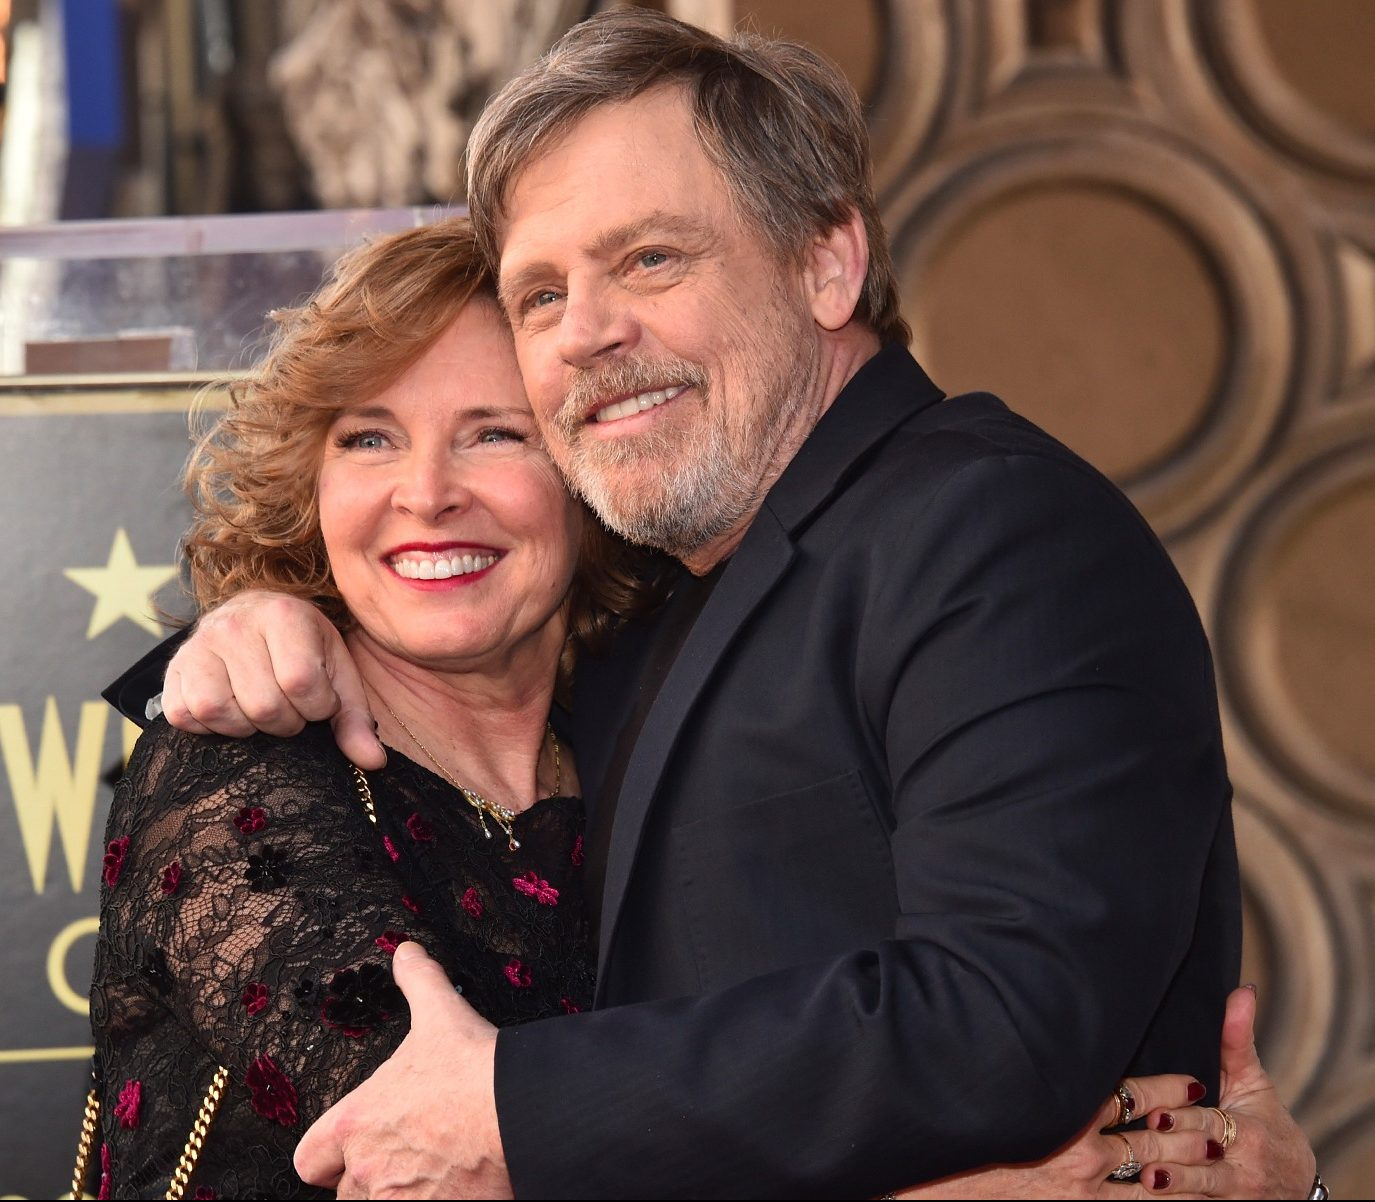 36 8 e1601474757812 20 Little-Known Facts About The Legendary Mark Hamill